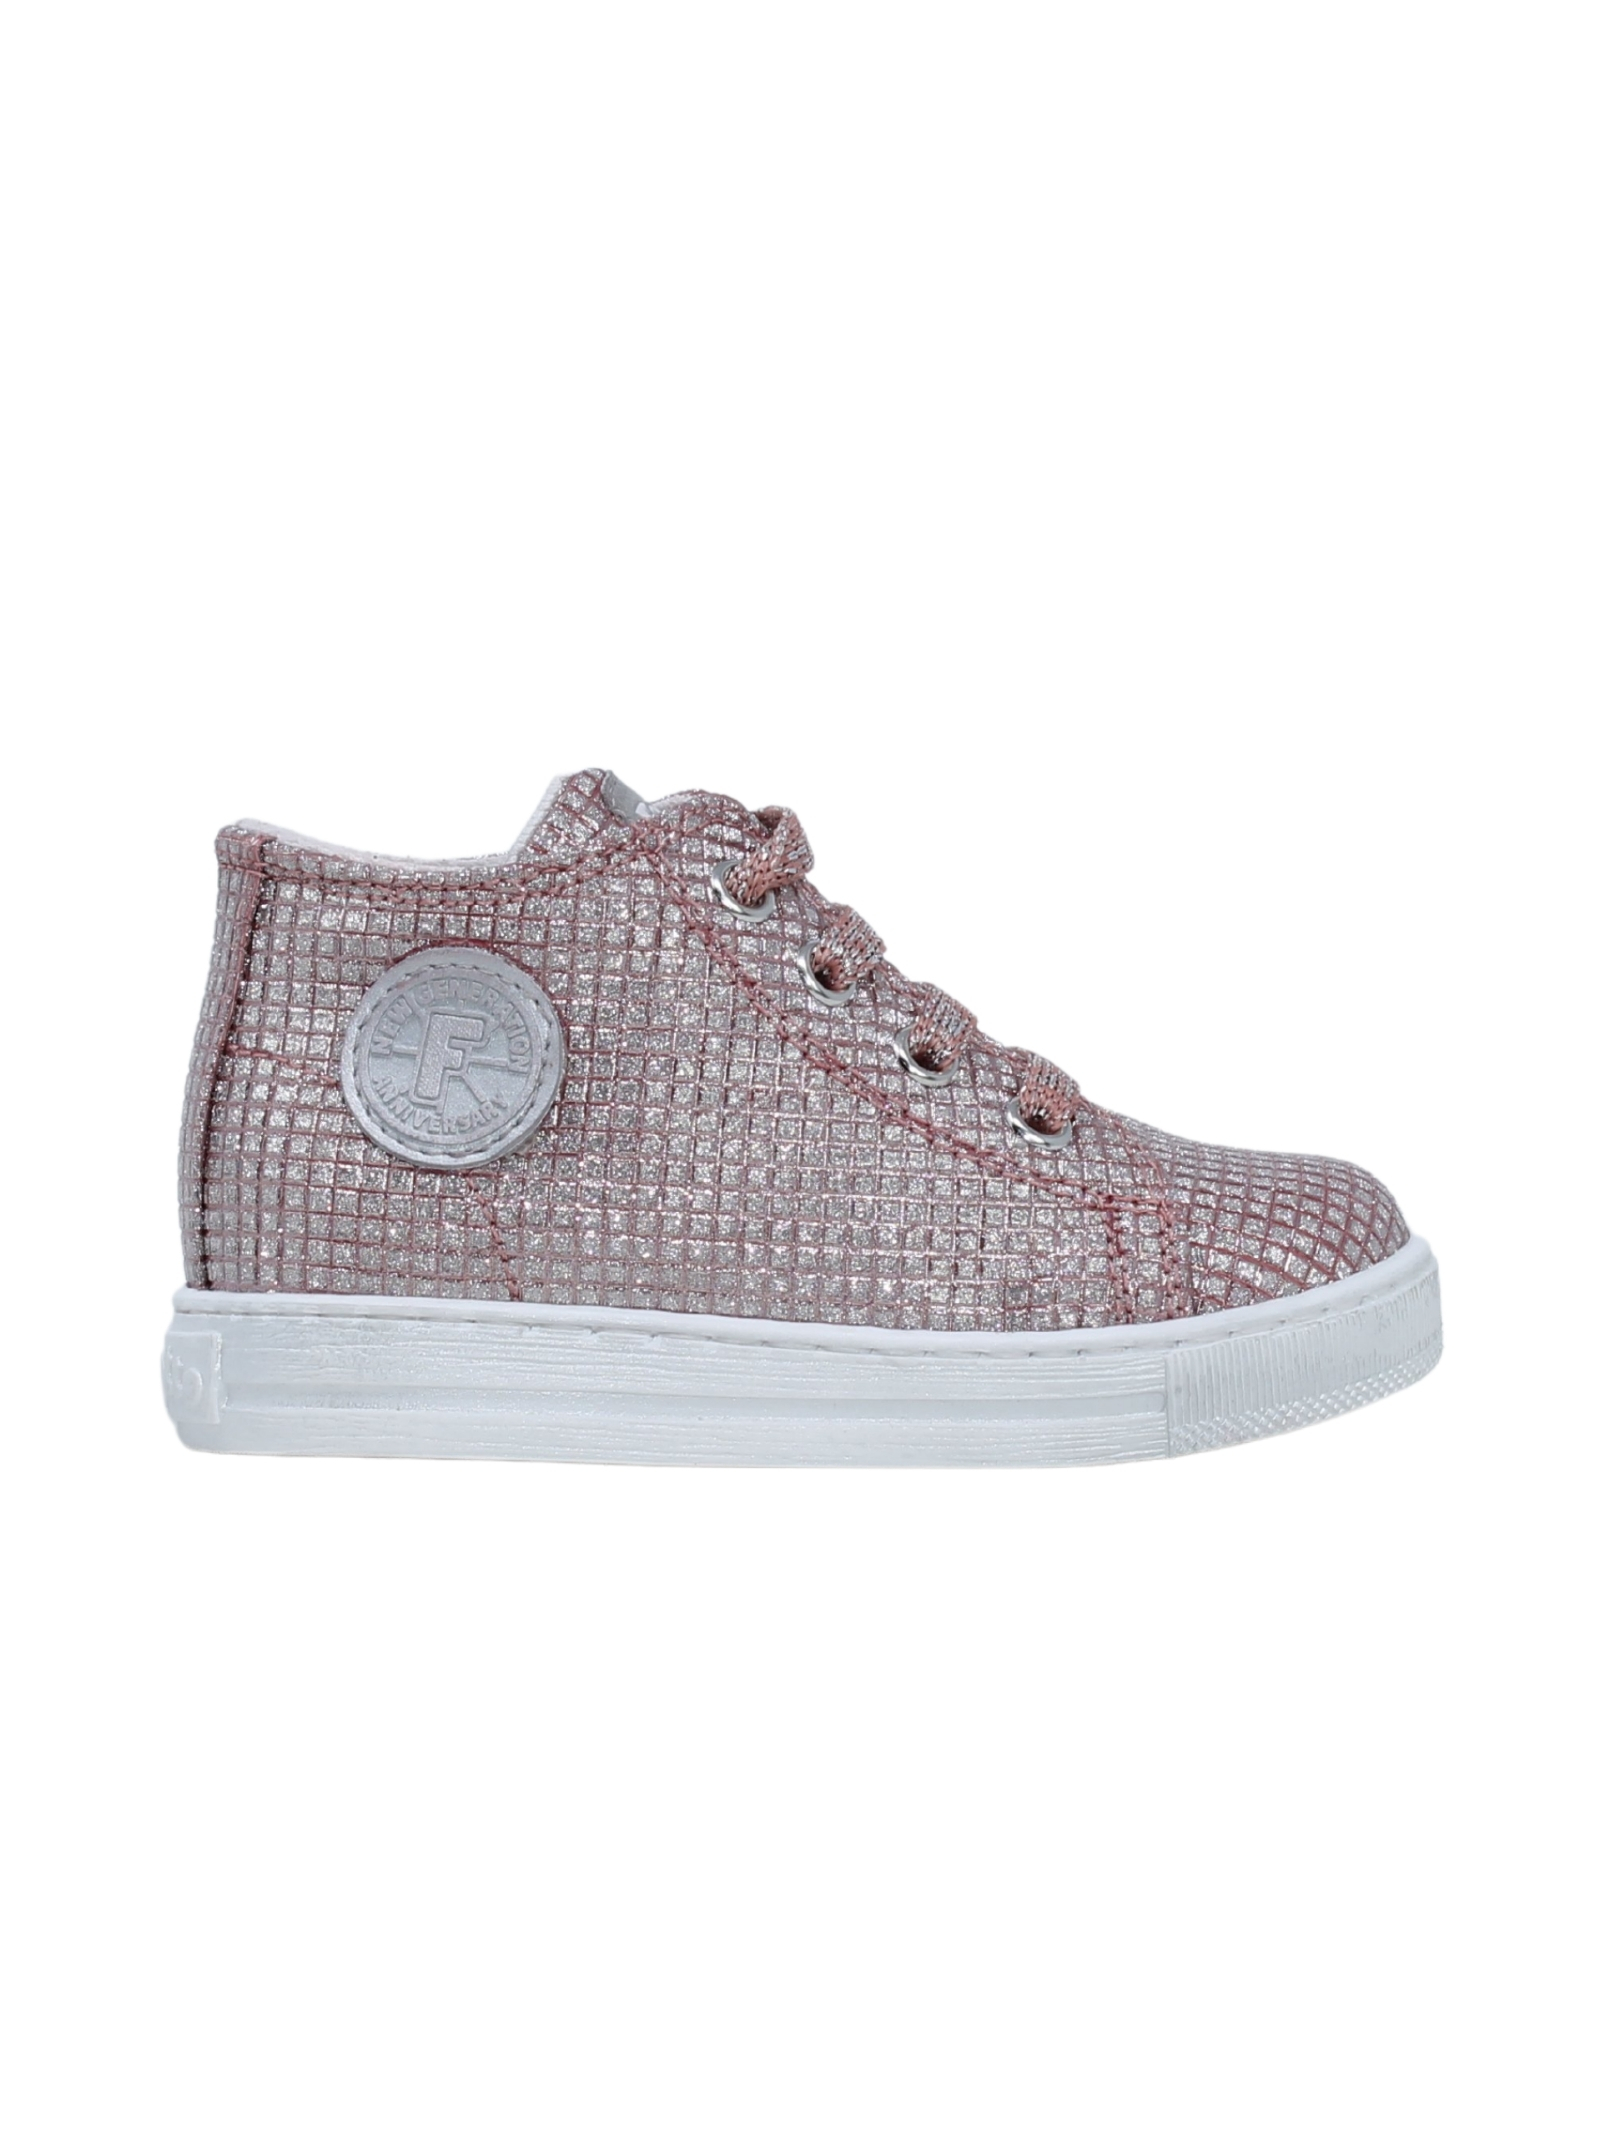 FALCOTTO | Sneakers | 20146000M02